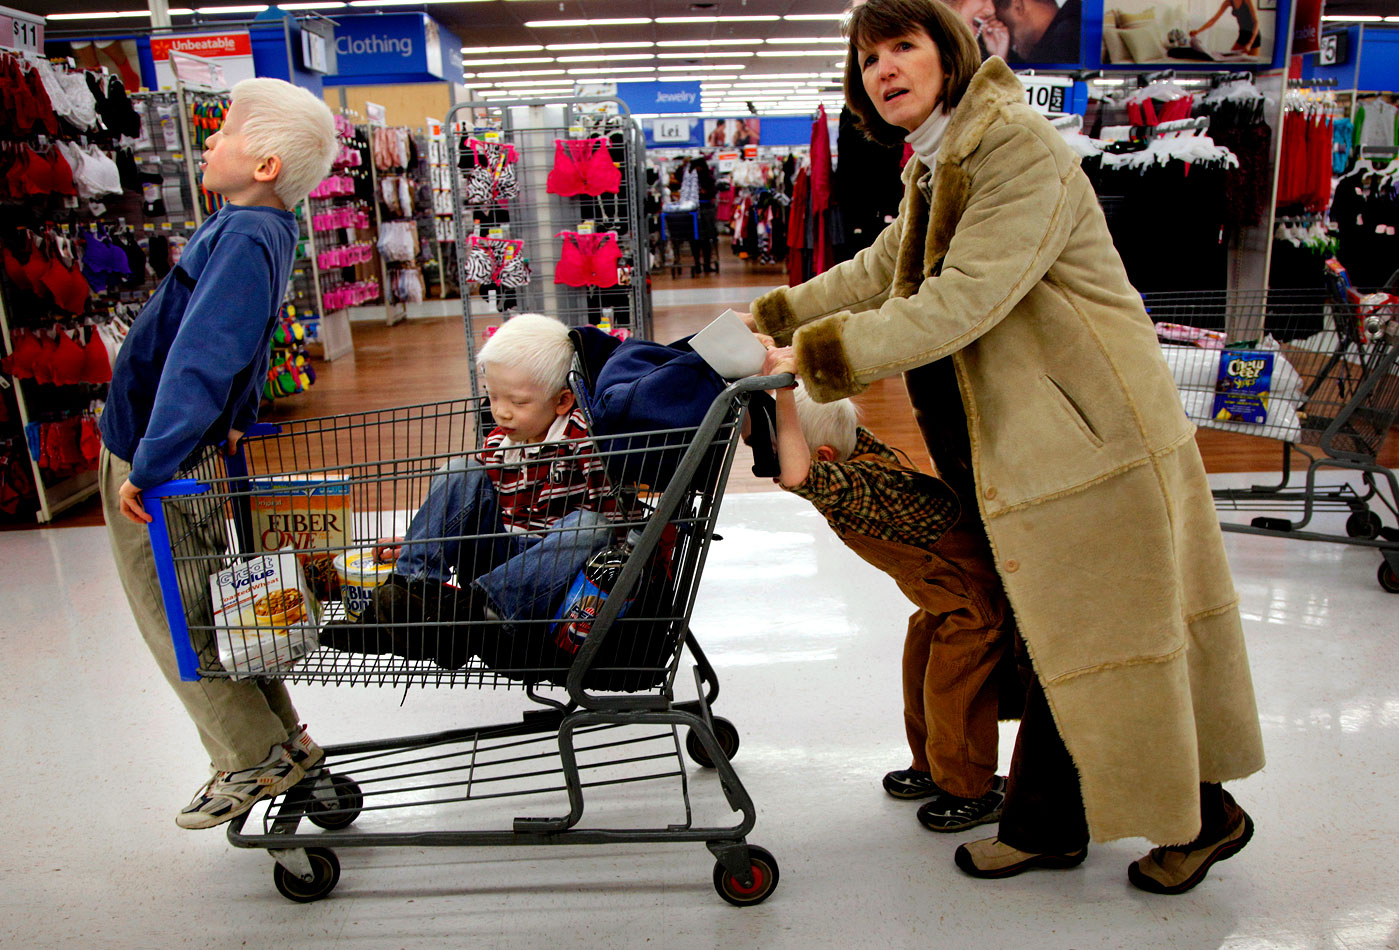 Elijah, Paul and Micah hang onto the cart as the family shops at Wal-Mart.